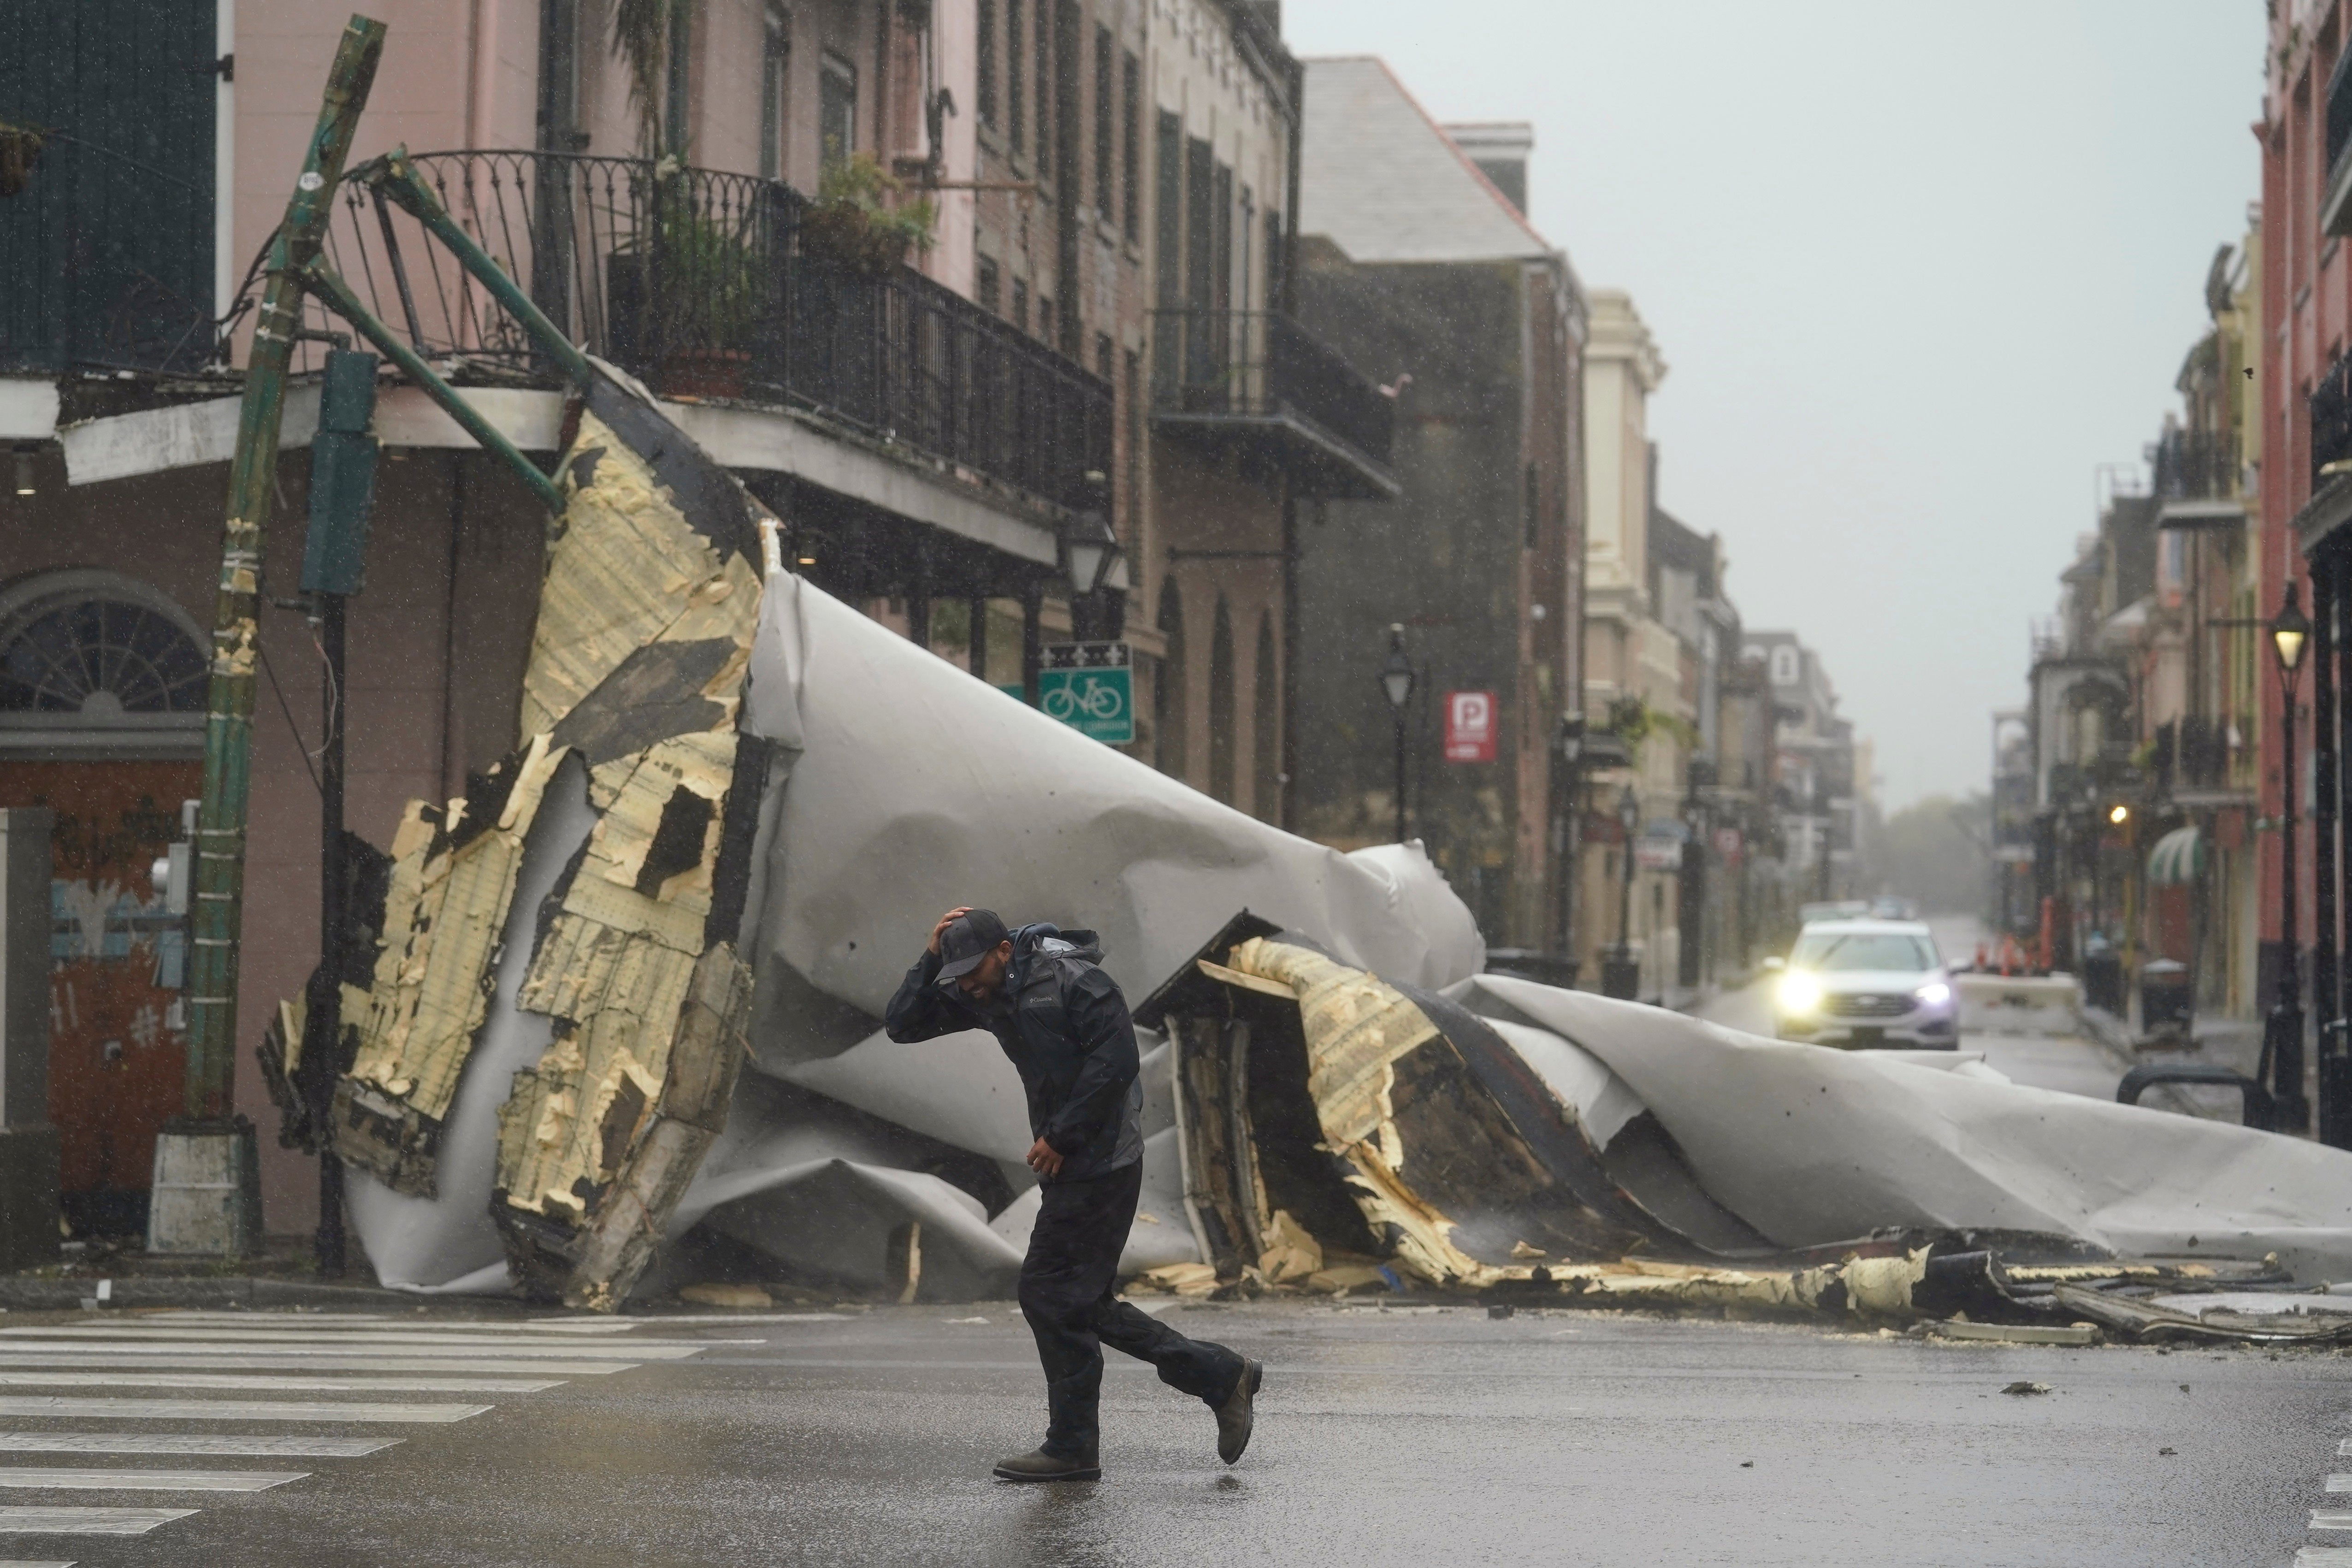 Hurricane Ida: Roads Flooded, Buildings Ripped Apart, Hundreds of Thousands Without Power in Louisiana   The Weather Channel - Articles from The Weather Channel   weather.com